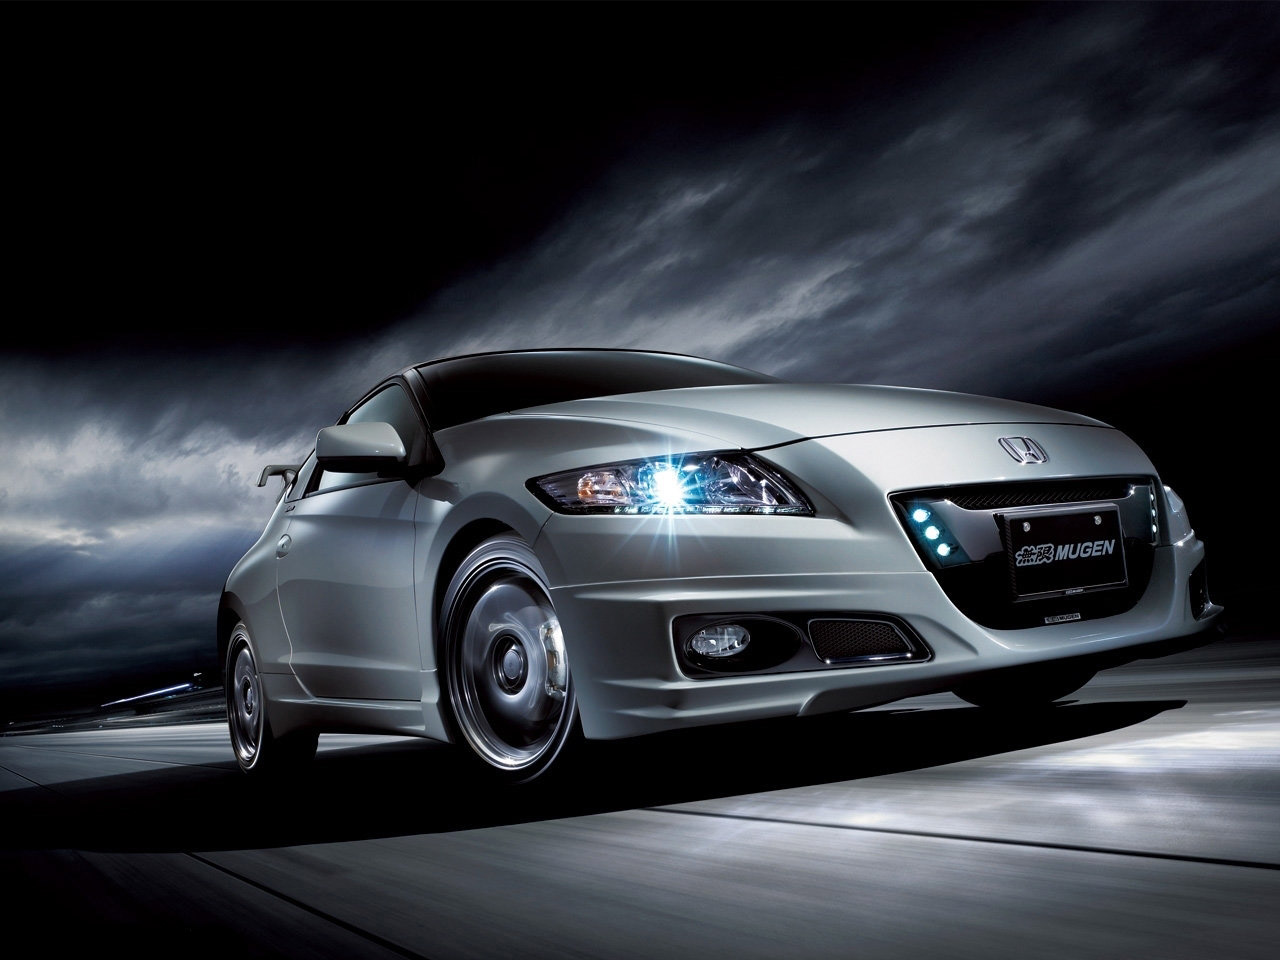 http://2.bp.blogspot.com/-8A_tKHfsfUY/T4KrzfM8ujI/AAAAAAAAAV8/WJBUPaTEEAs/s1600/honda_civic_type-cars-wallpapers.jpg